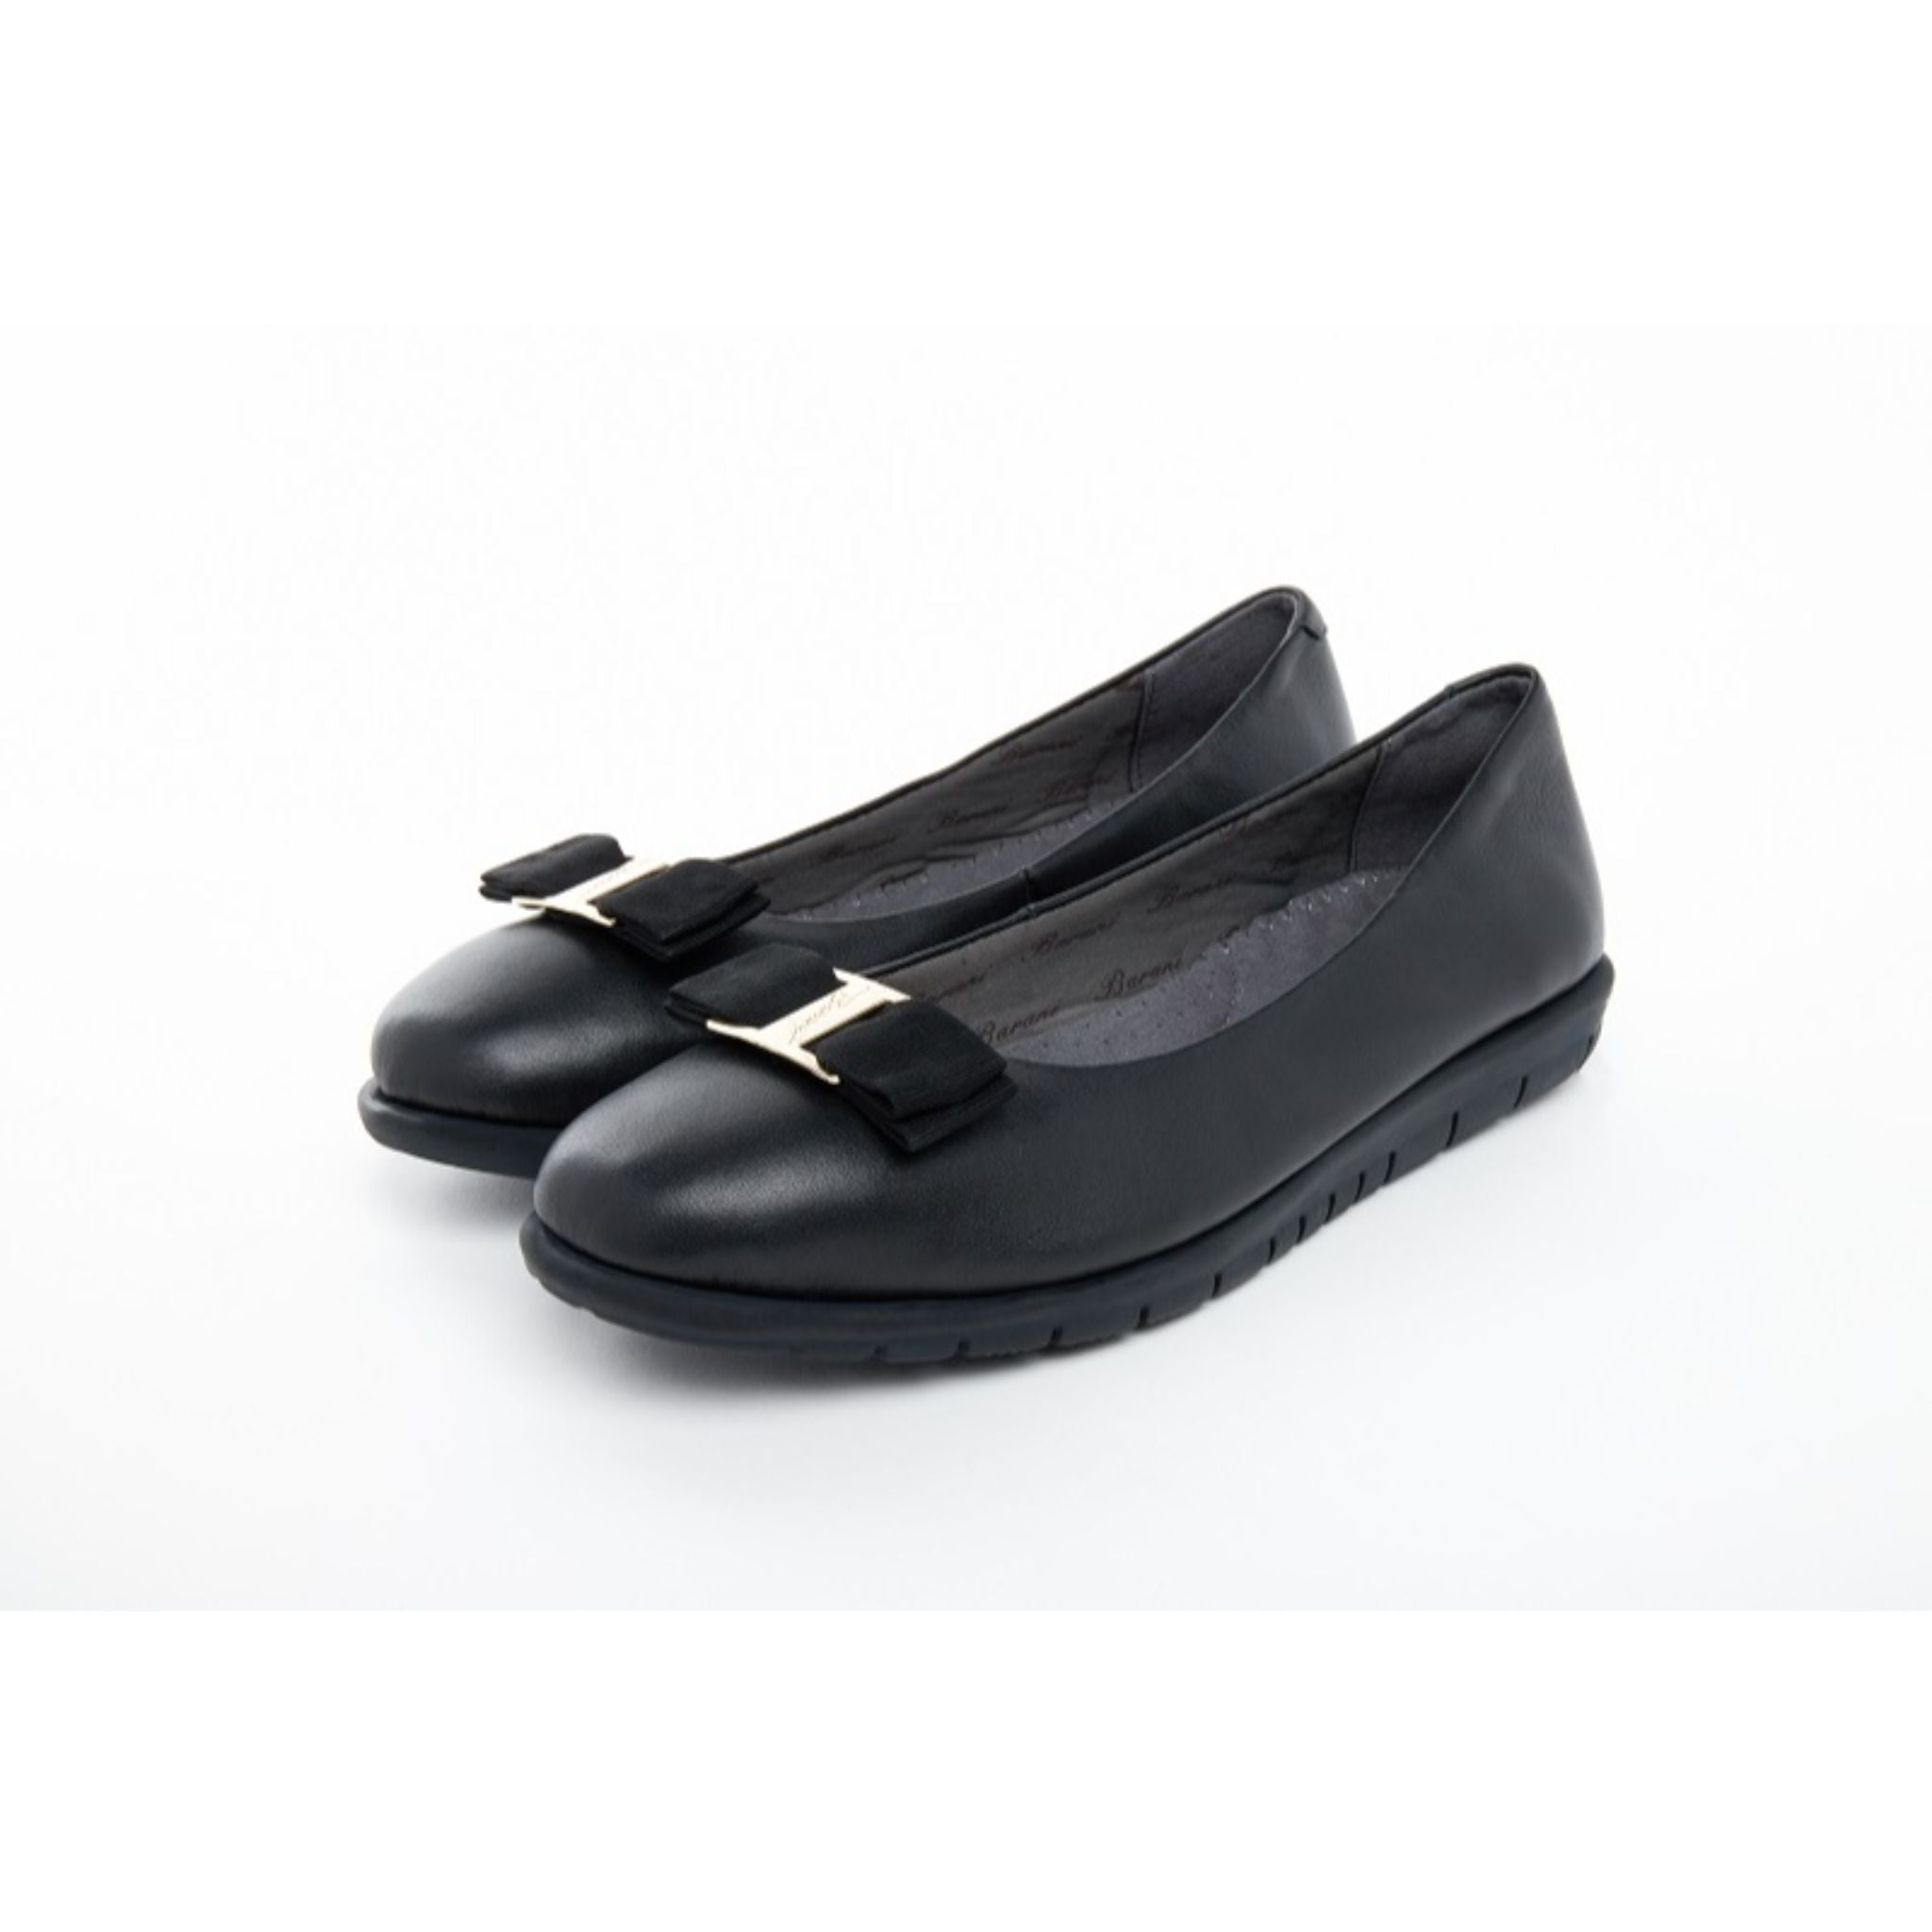 Barani Leather Pumps Ballet Flats with Fixed Buckle 8841-33 Black